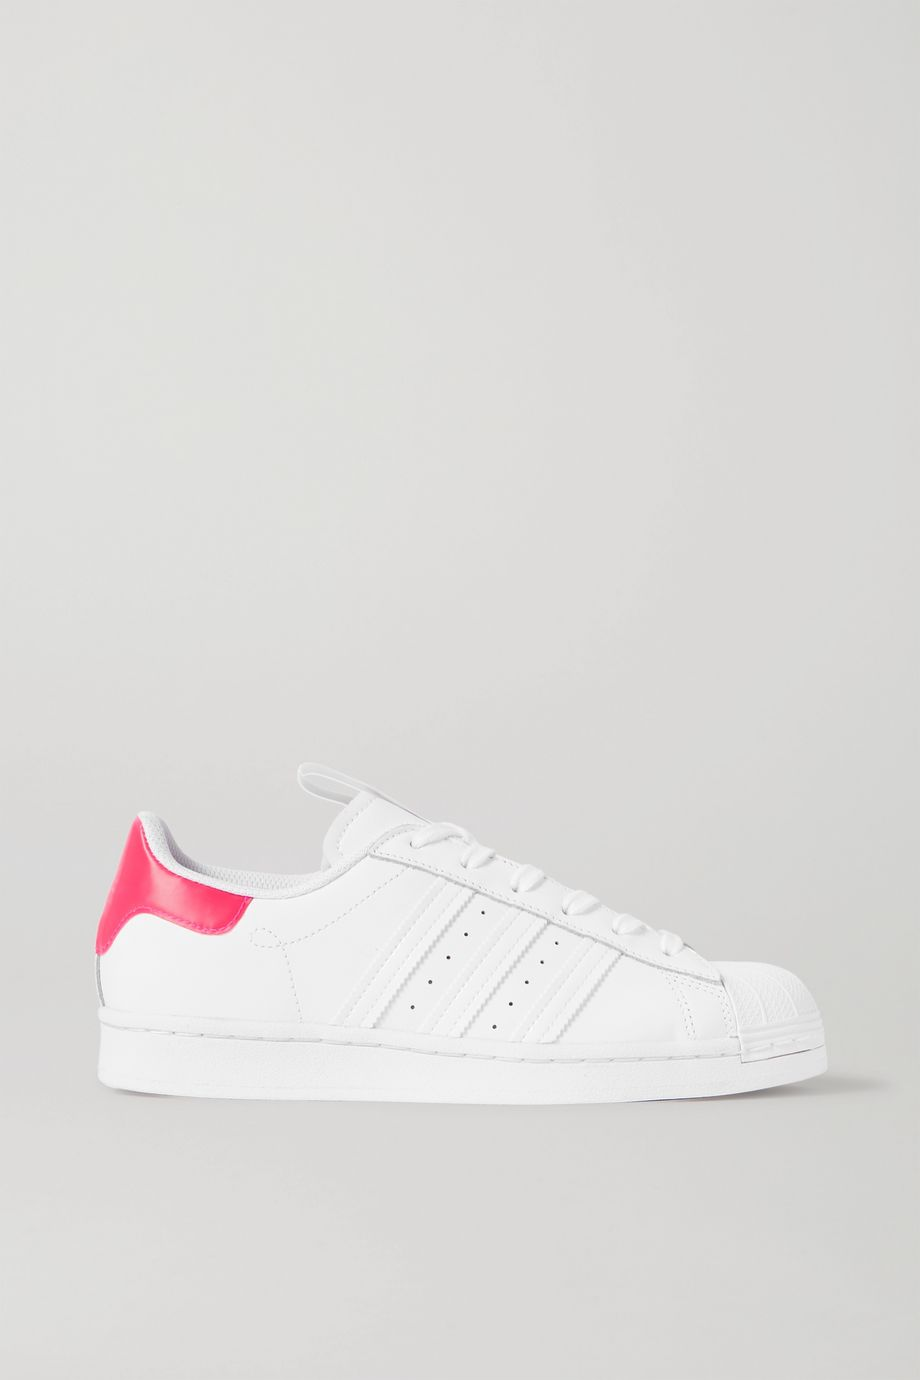 adidas Originals Superstar Hong Kong holographic leather sneakers